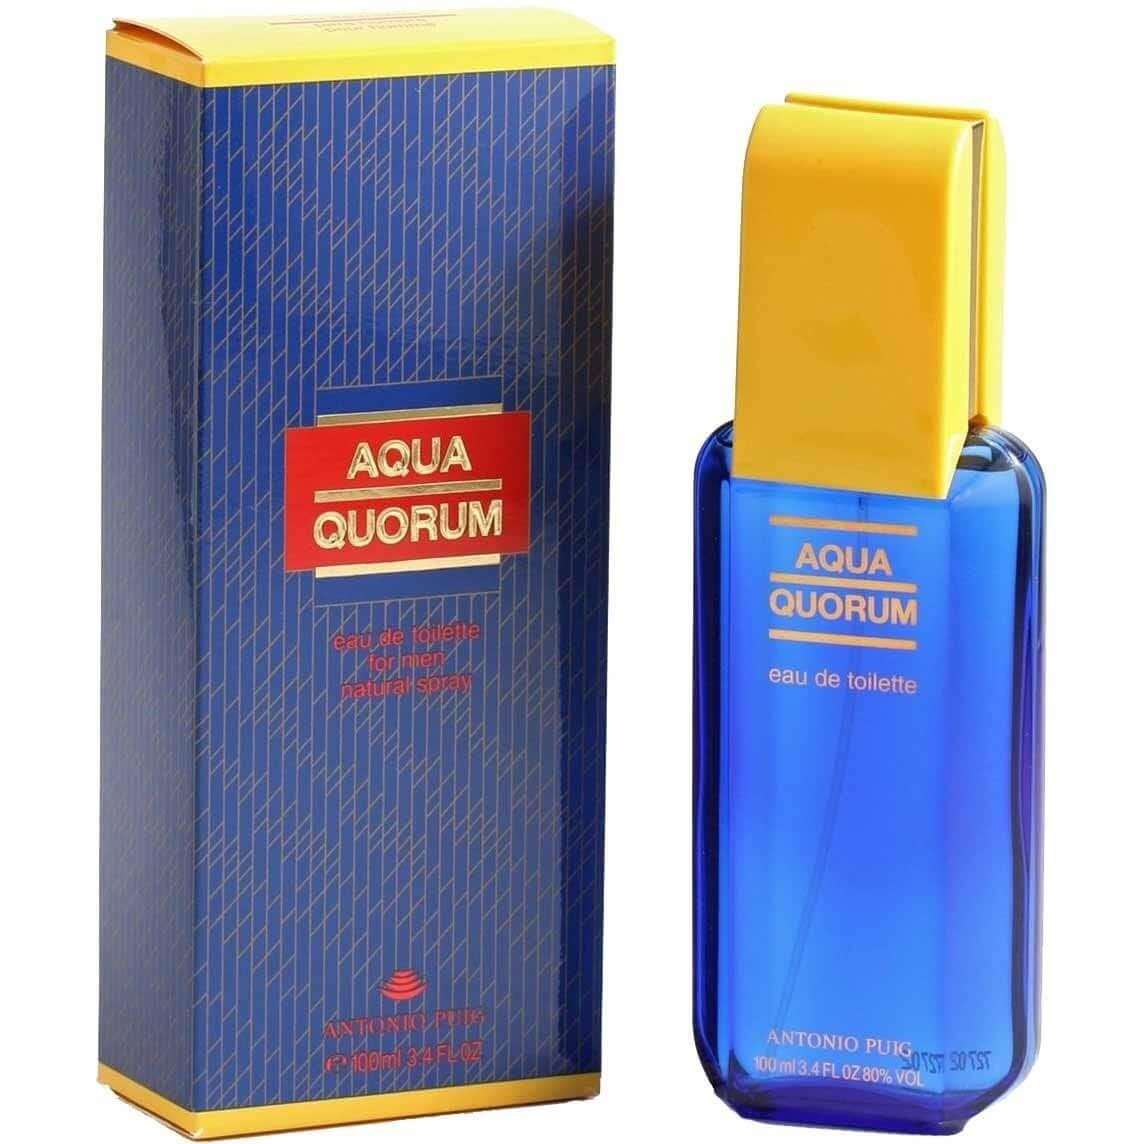 aqua-quorum-by-antonio-puig-cologne-3-3-3-4-oz-new-in-box